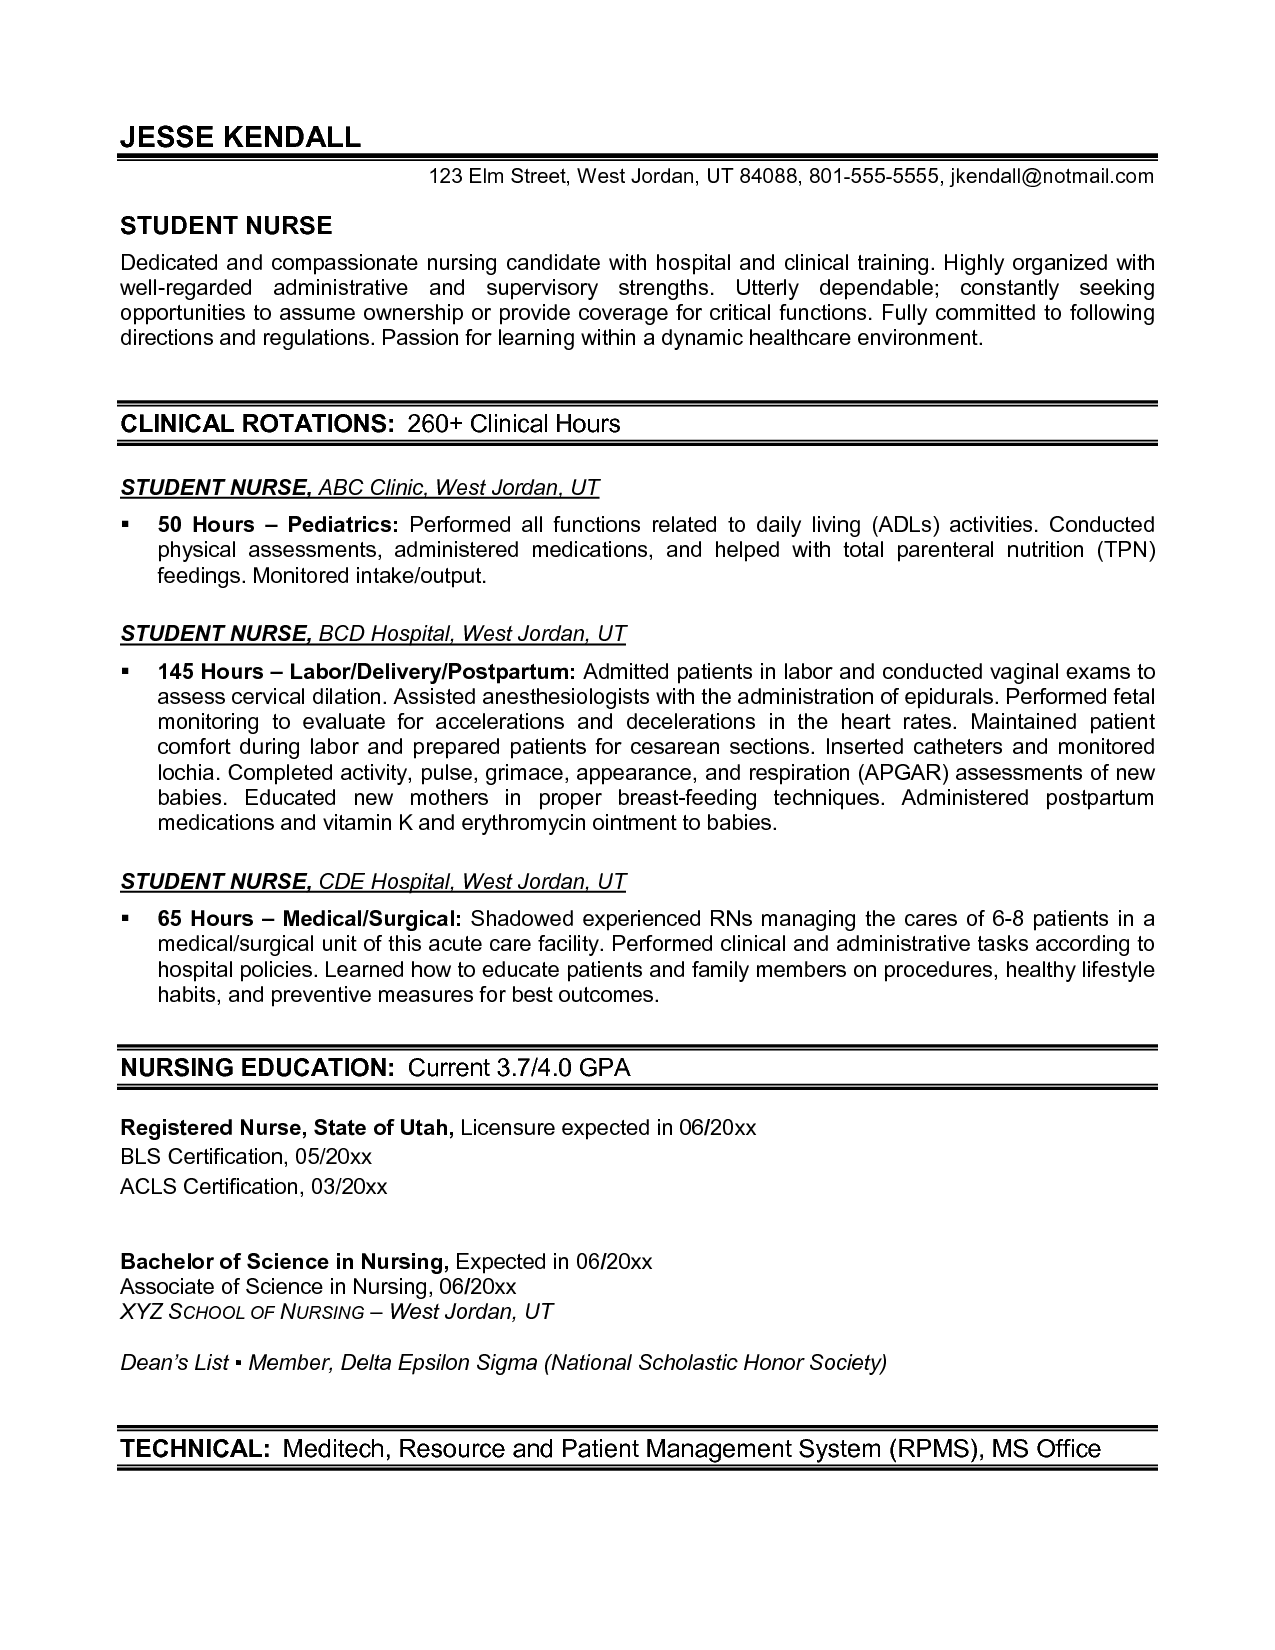 Marvelous Nurse Educator Resume Resume Lpn Nursing Home Rn Resume Example Resume Cv  Cover Letter .  Resume Examples For Nurses